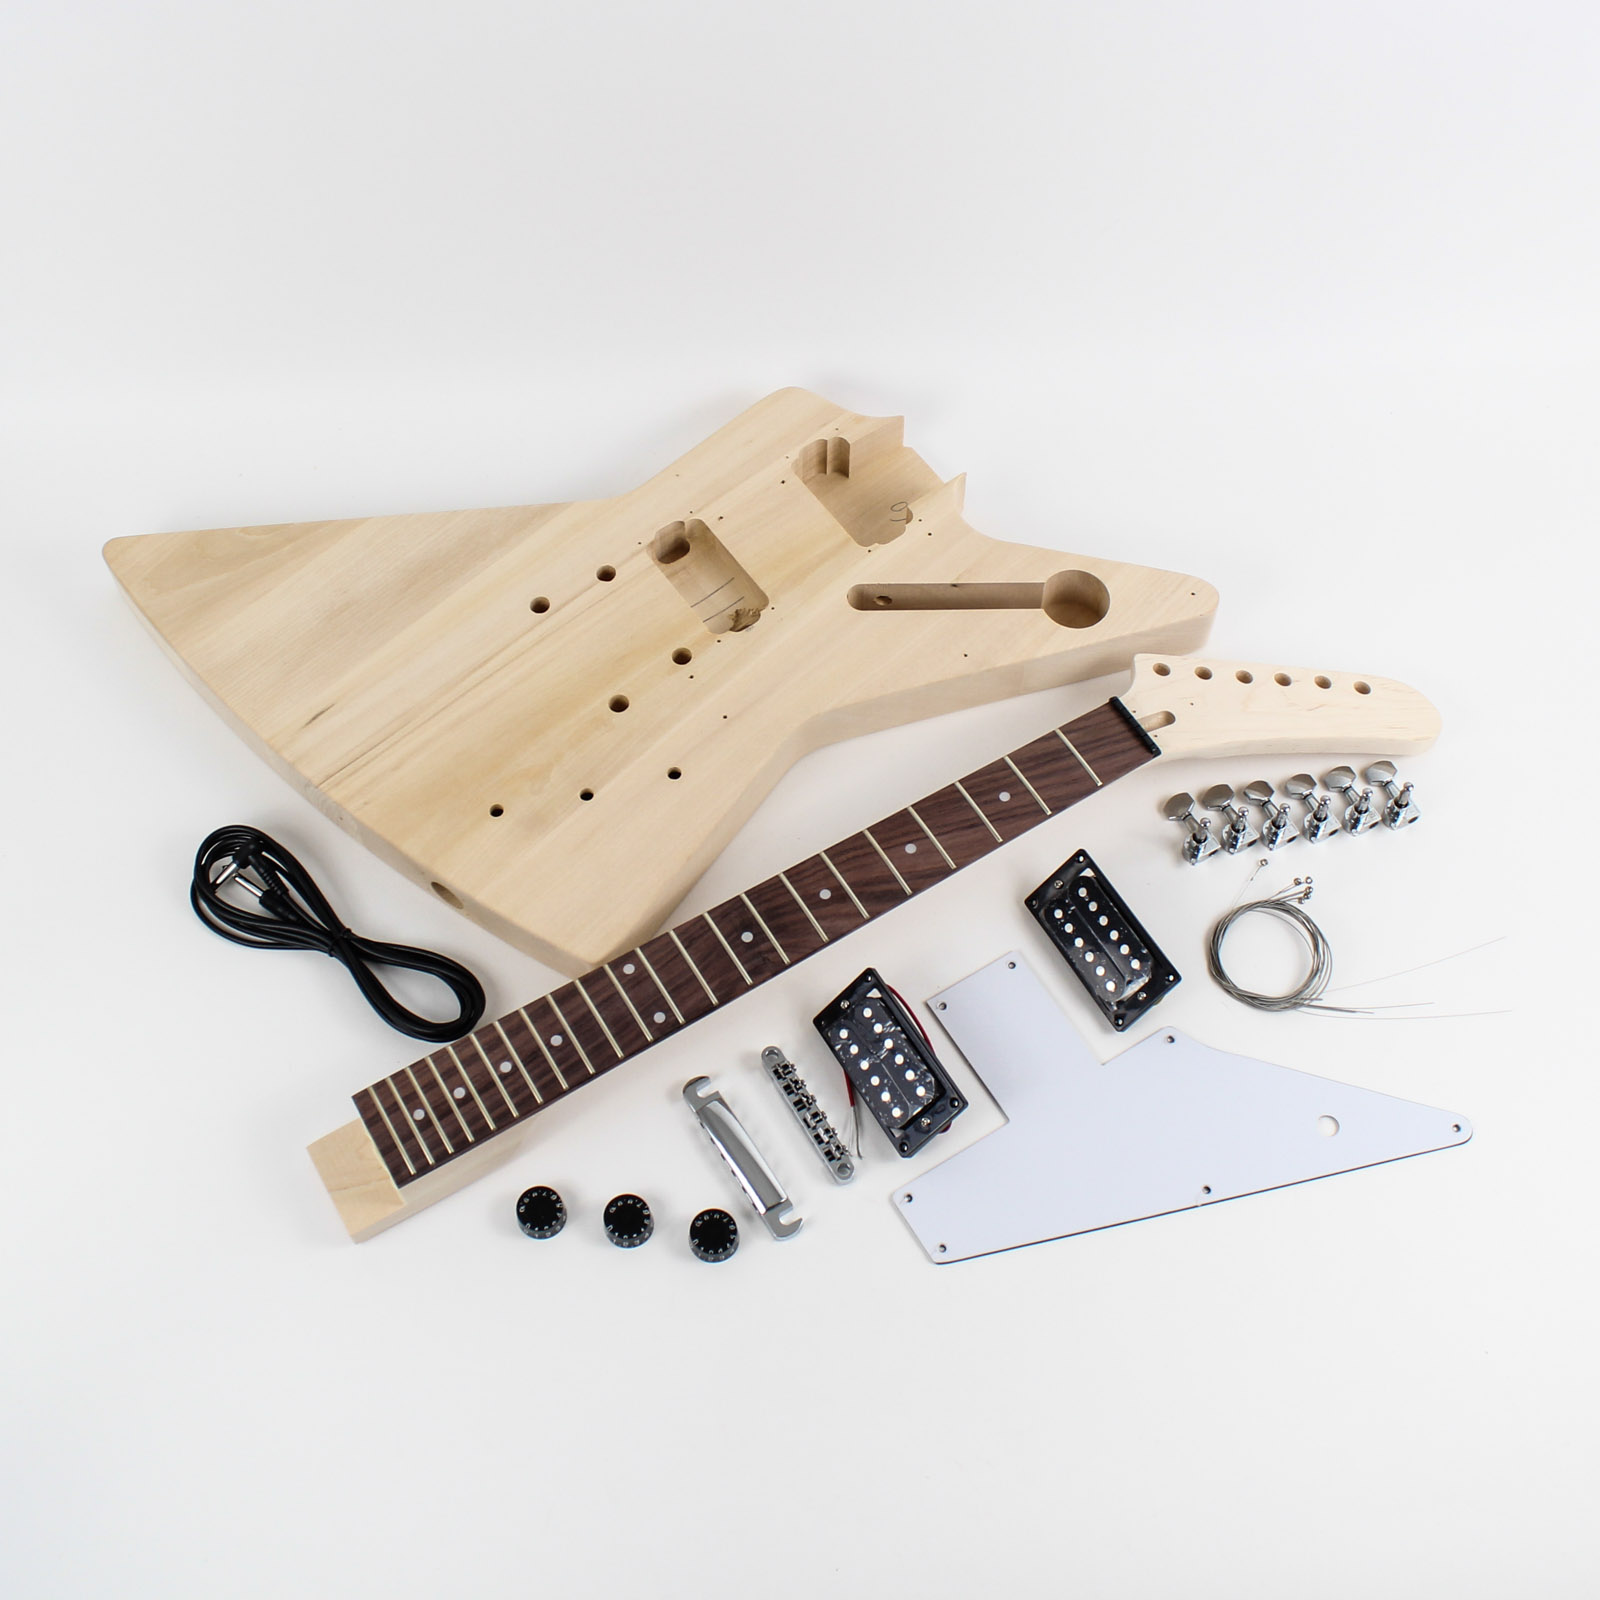 gibson explorer guitar kit diy guitars. Black Bedroom Furniture Sets. Home Design Ideas